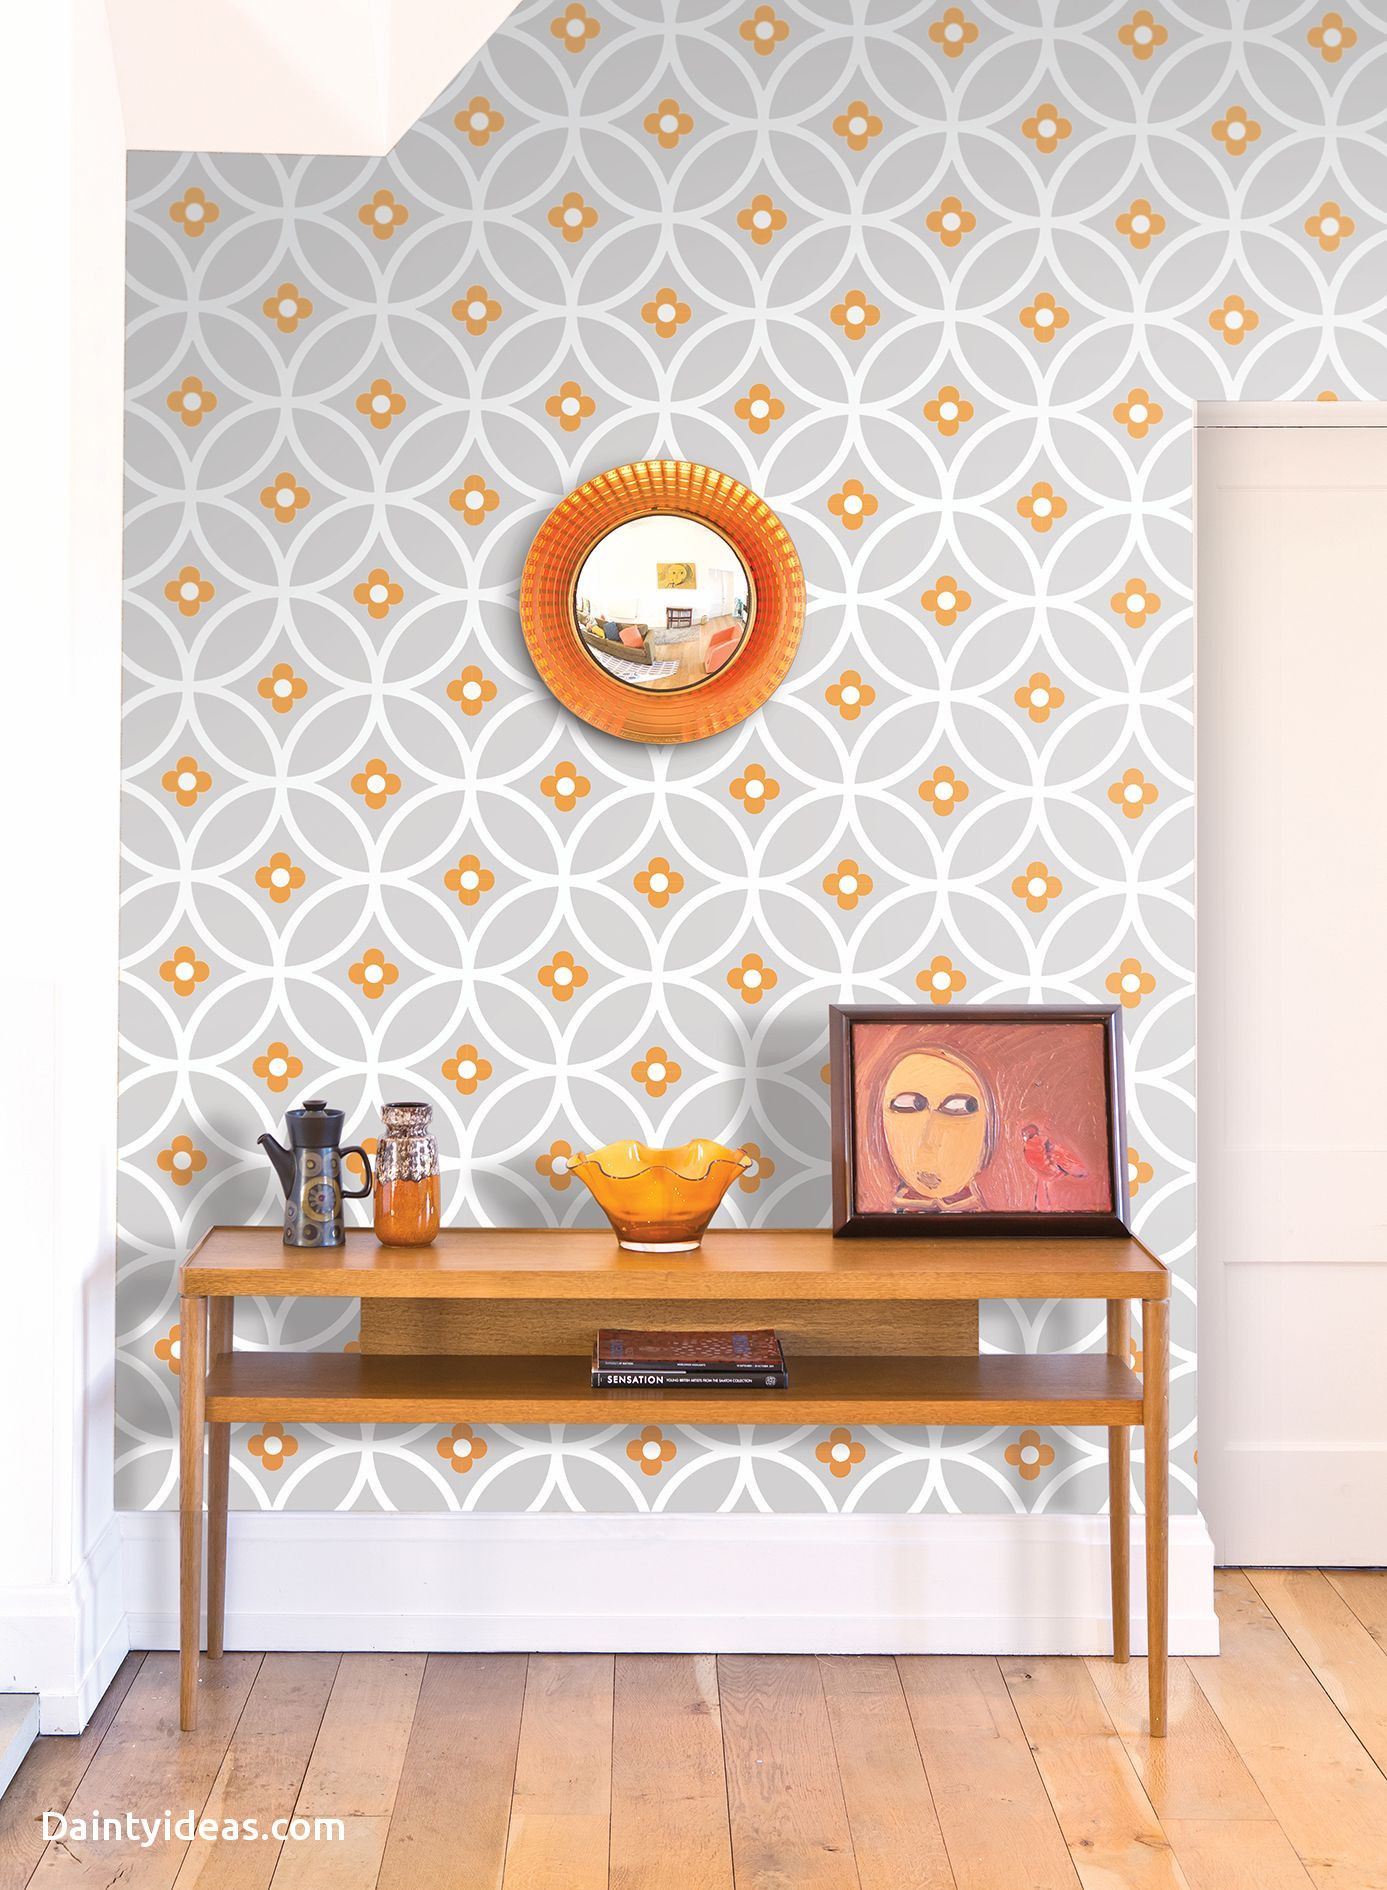 Beautiful Mid Century Modern Wallpaper Retro, Desain, Rumah